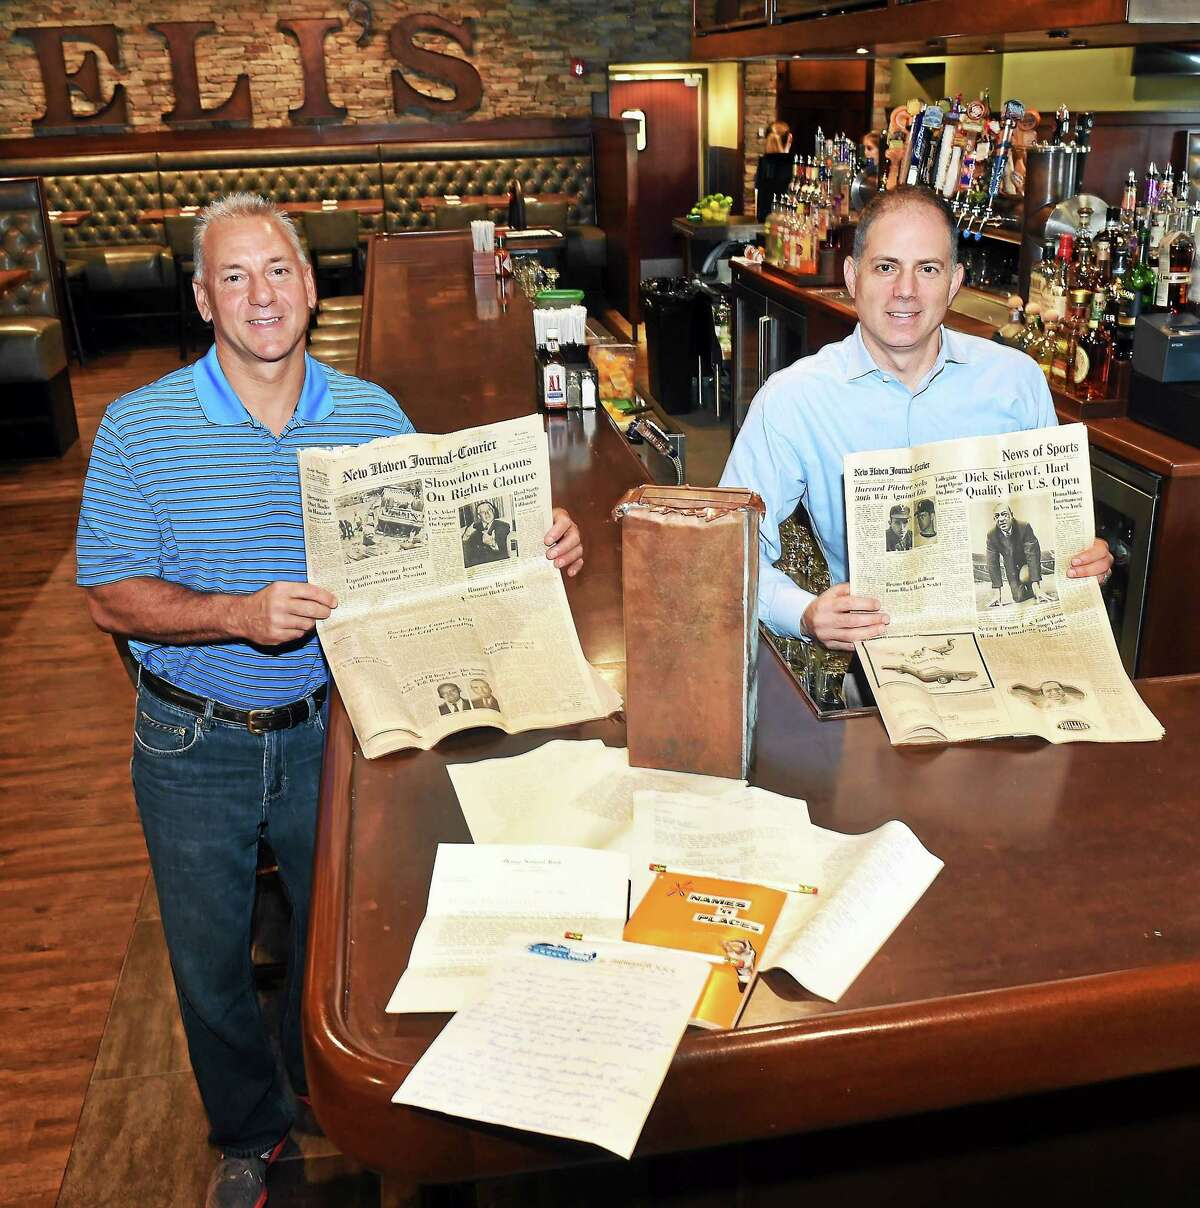 Richard Ciardiello, owner of the Eli's restaurant chain in the New Haven area, left, and Shawn Reilly, Eli's Director of Operations, at the Eli's restaurant in Orange with 1964 artifacts found in a time capsule found on the construction site of the Orange restaurant when it was being built.